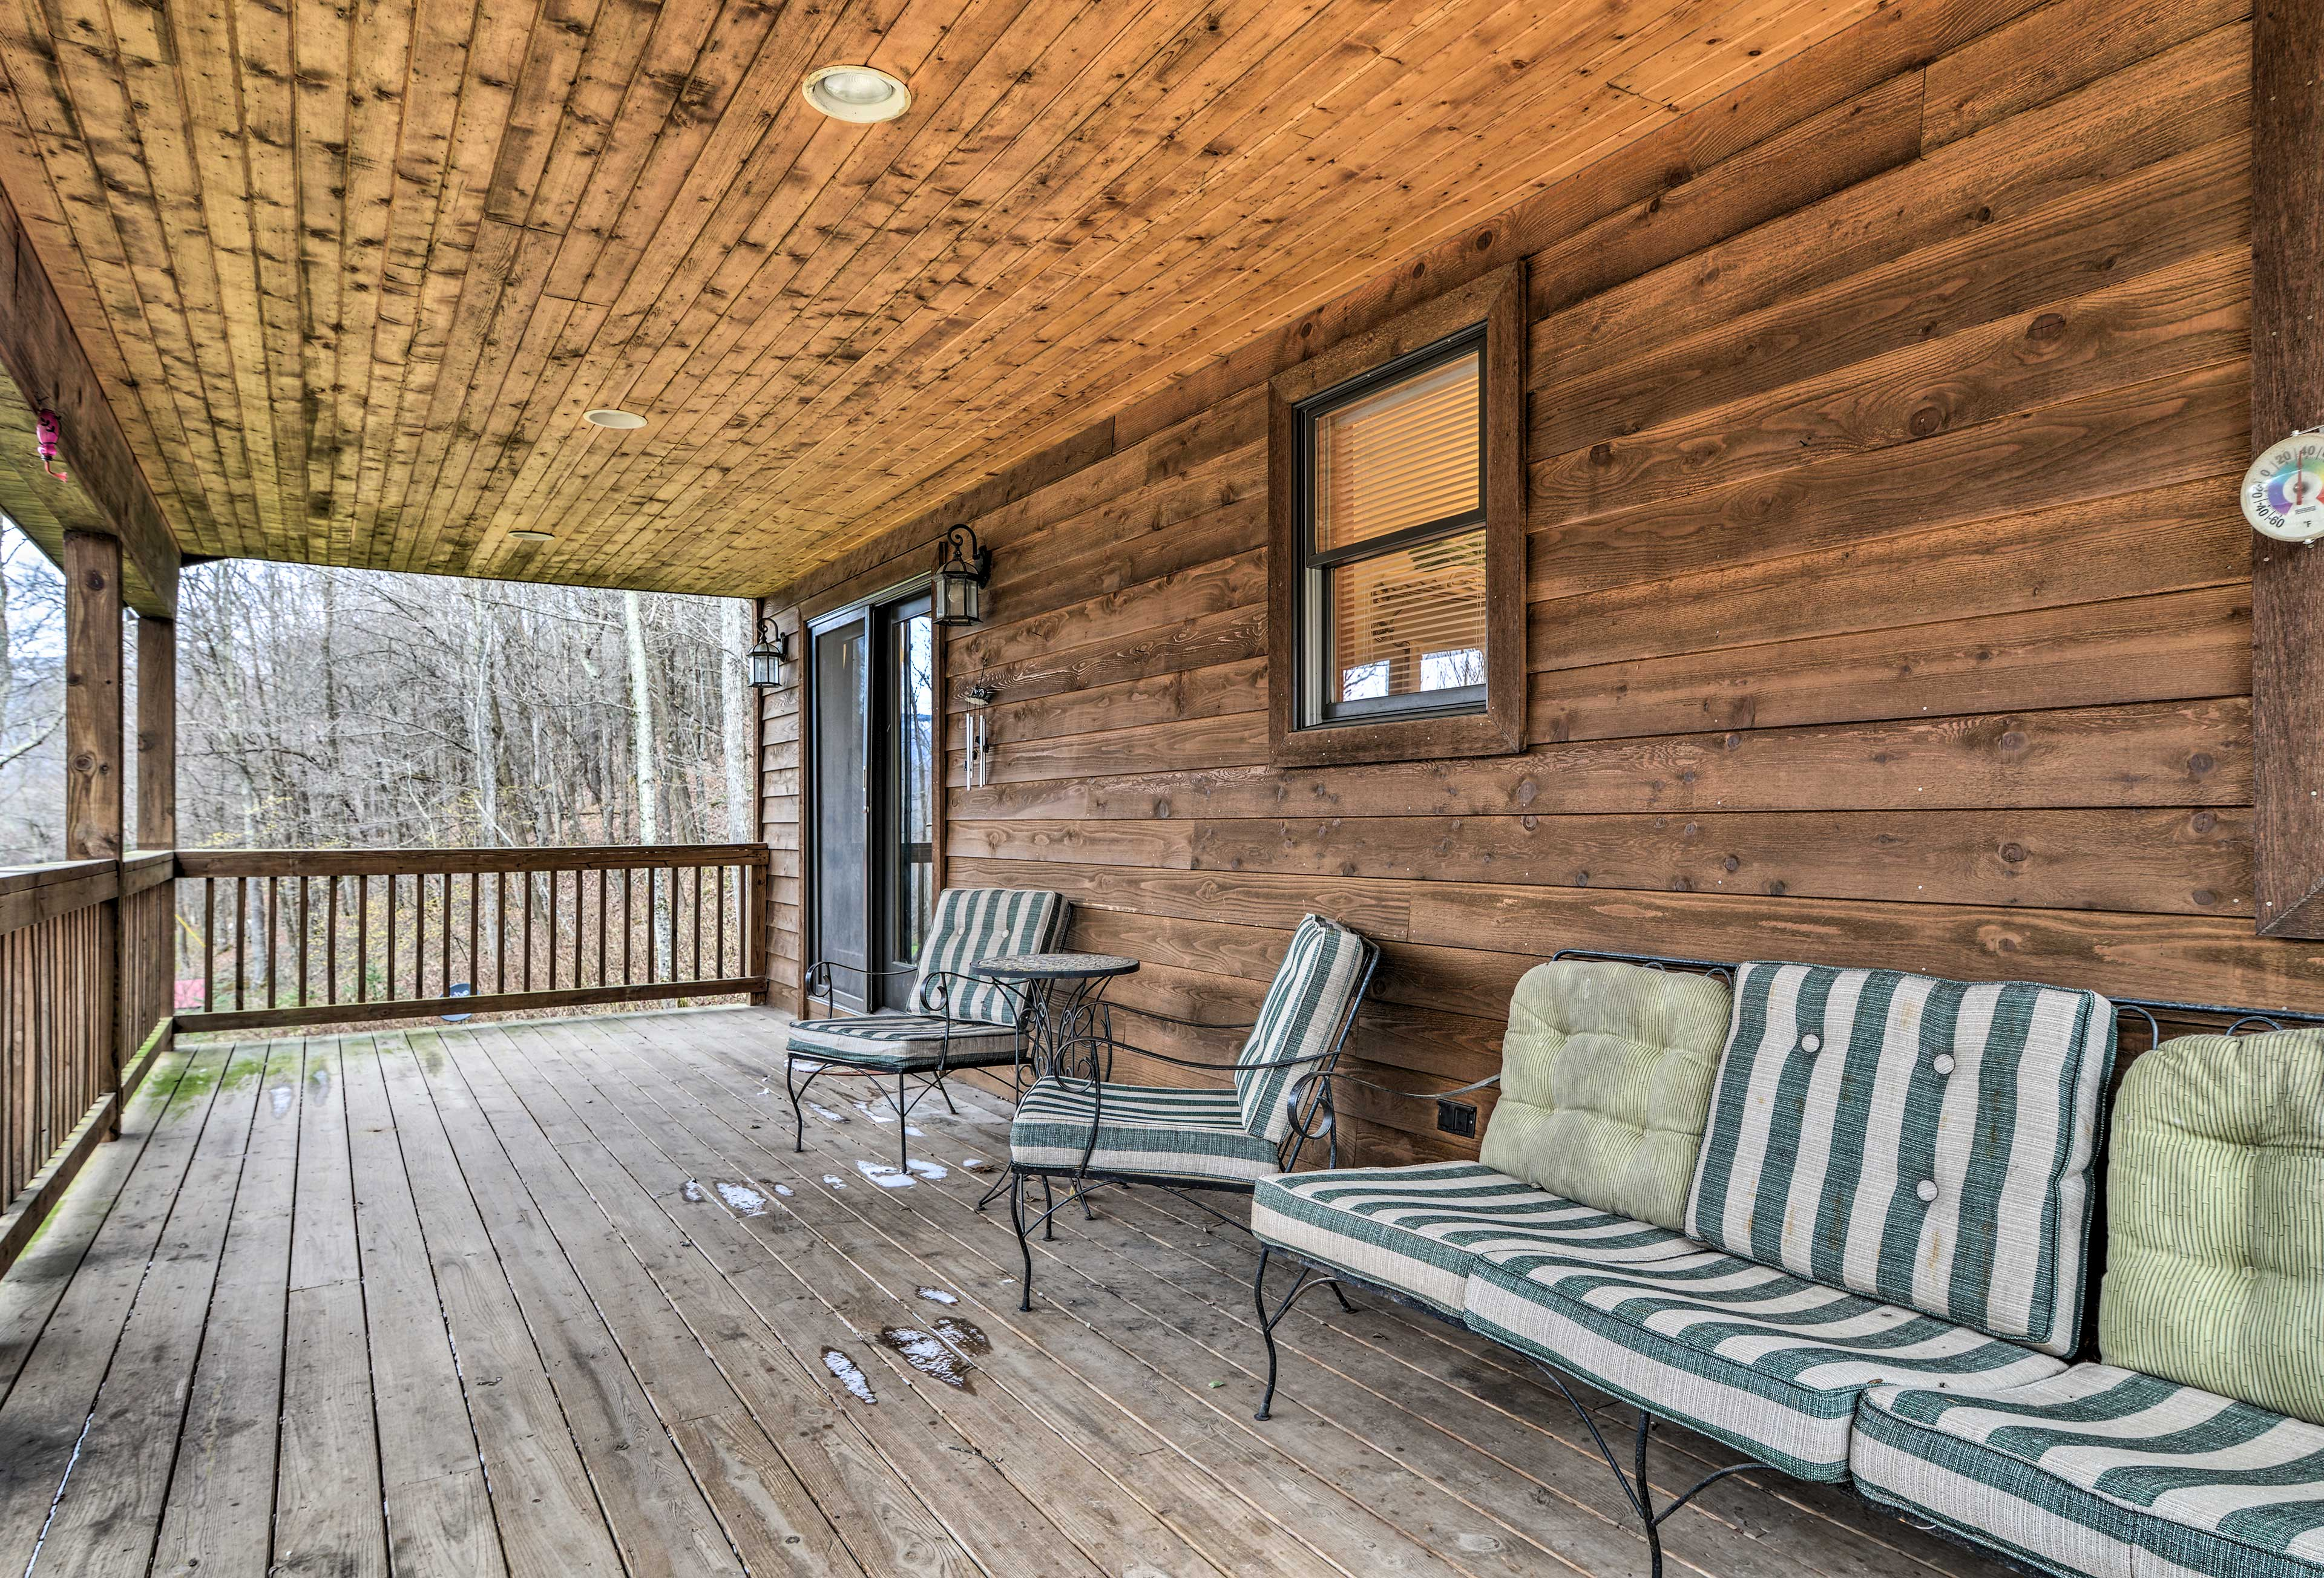 Wake up with a cup of coffee on the spacious porch overlooking the trees.